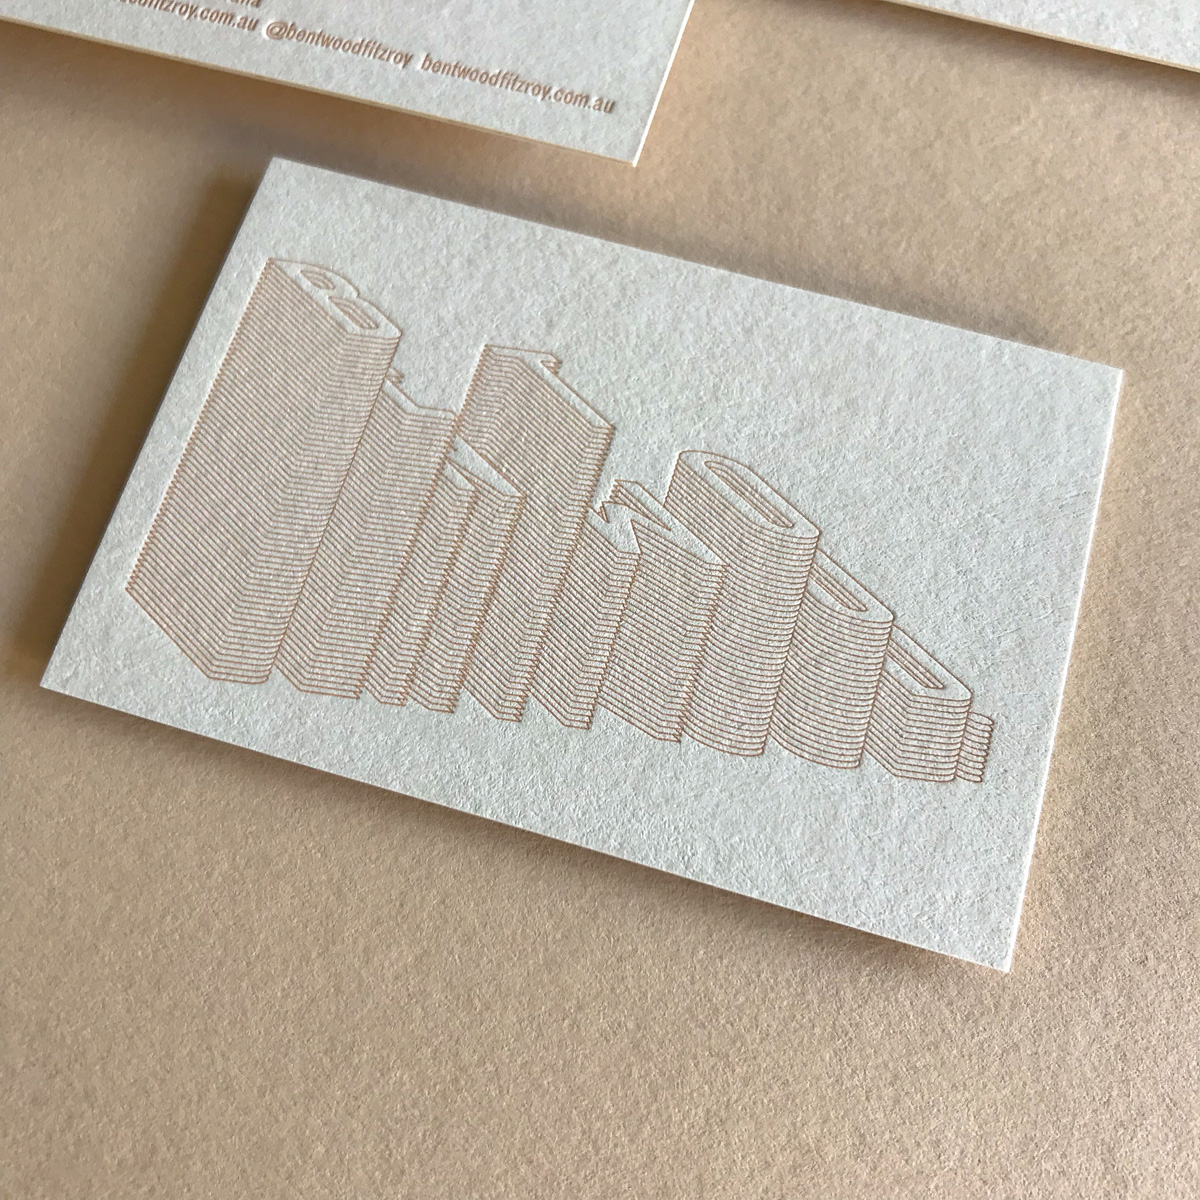 Custom letterpress business cards for Bentwood on Colorplan Mist 3